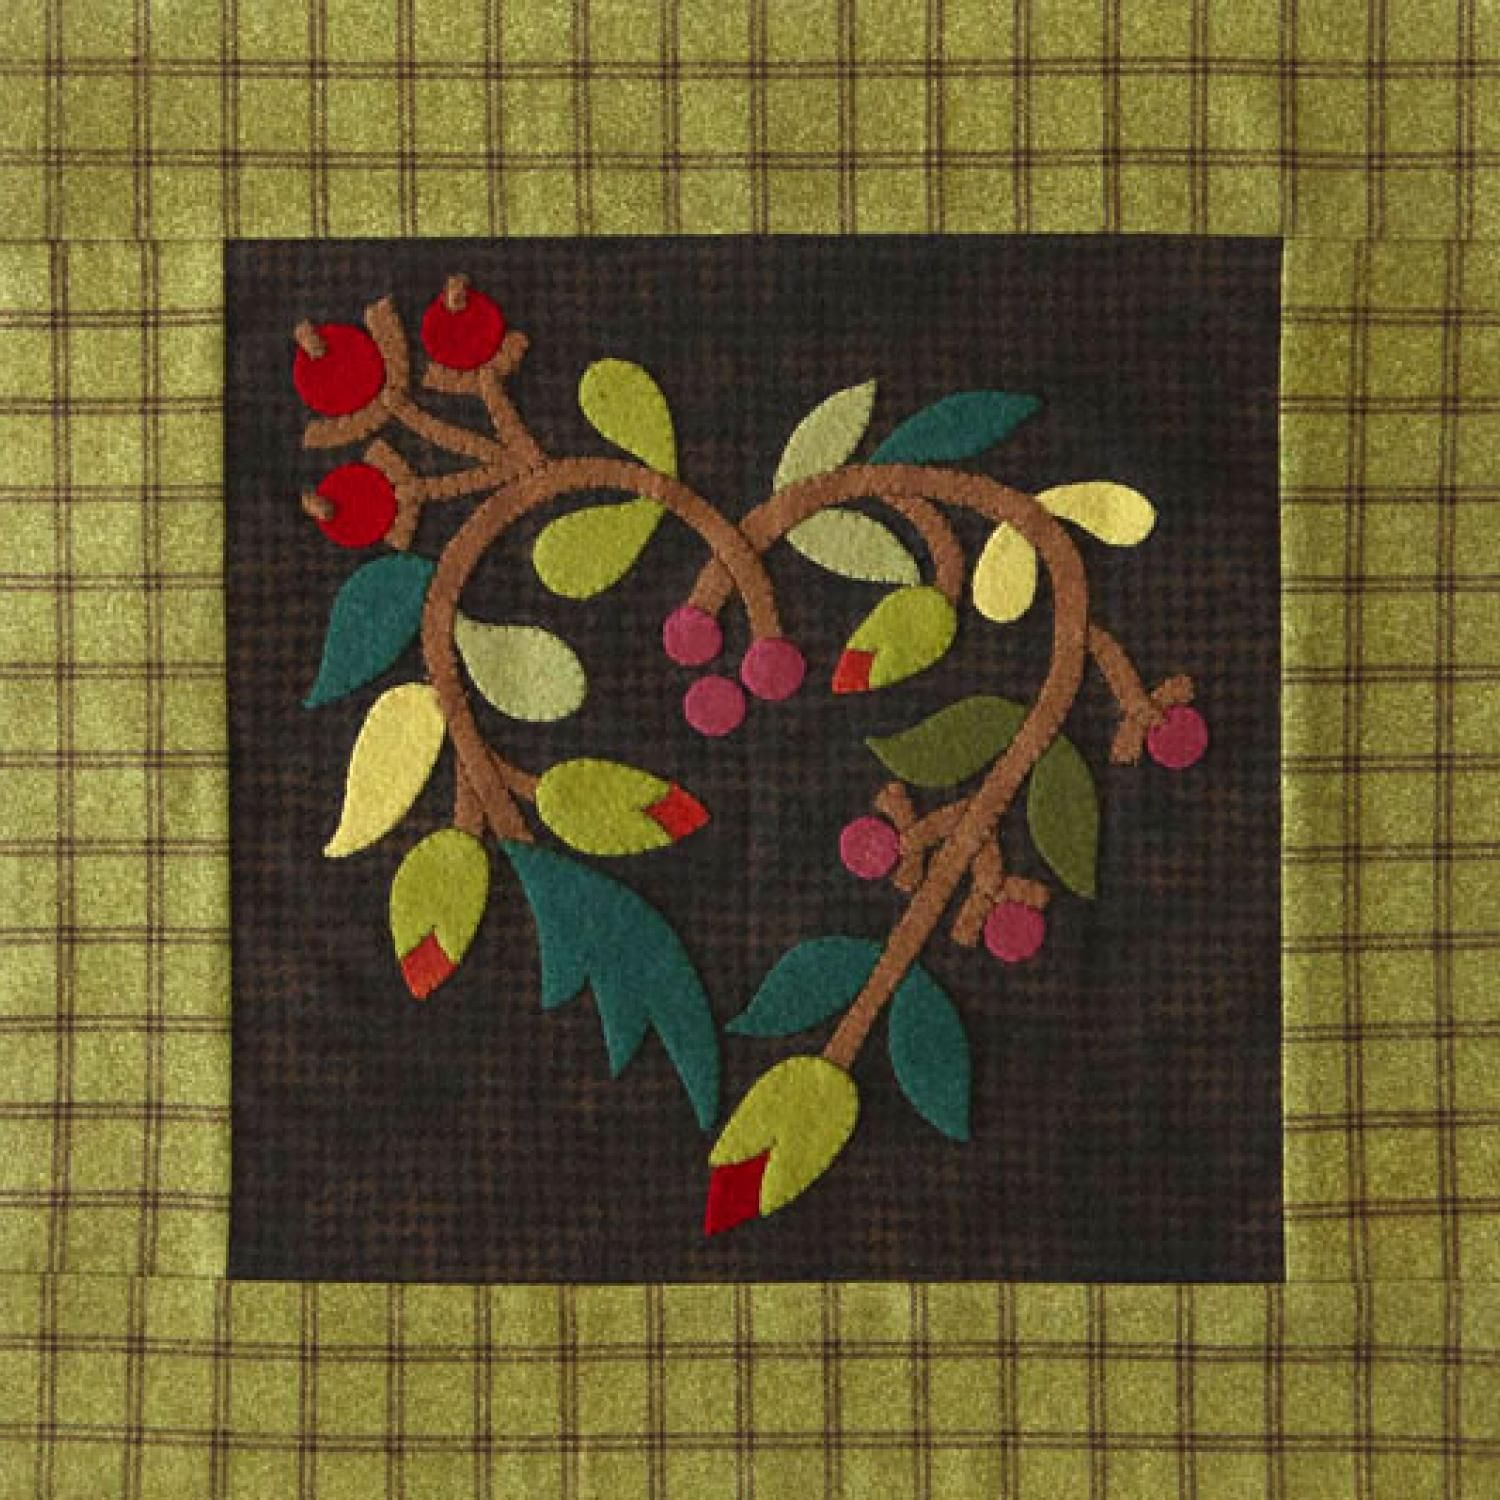 Warm the heart with a wall hanging made from felted wool and flannel. The appliqué shapes were cut from jewel-tone scraps and the houndstooth and plaid flannel is from the Woolies Flannel collection by Bonnie Sullivan for Maywood Studio.